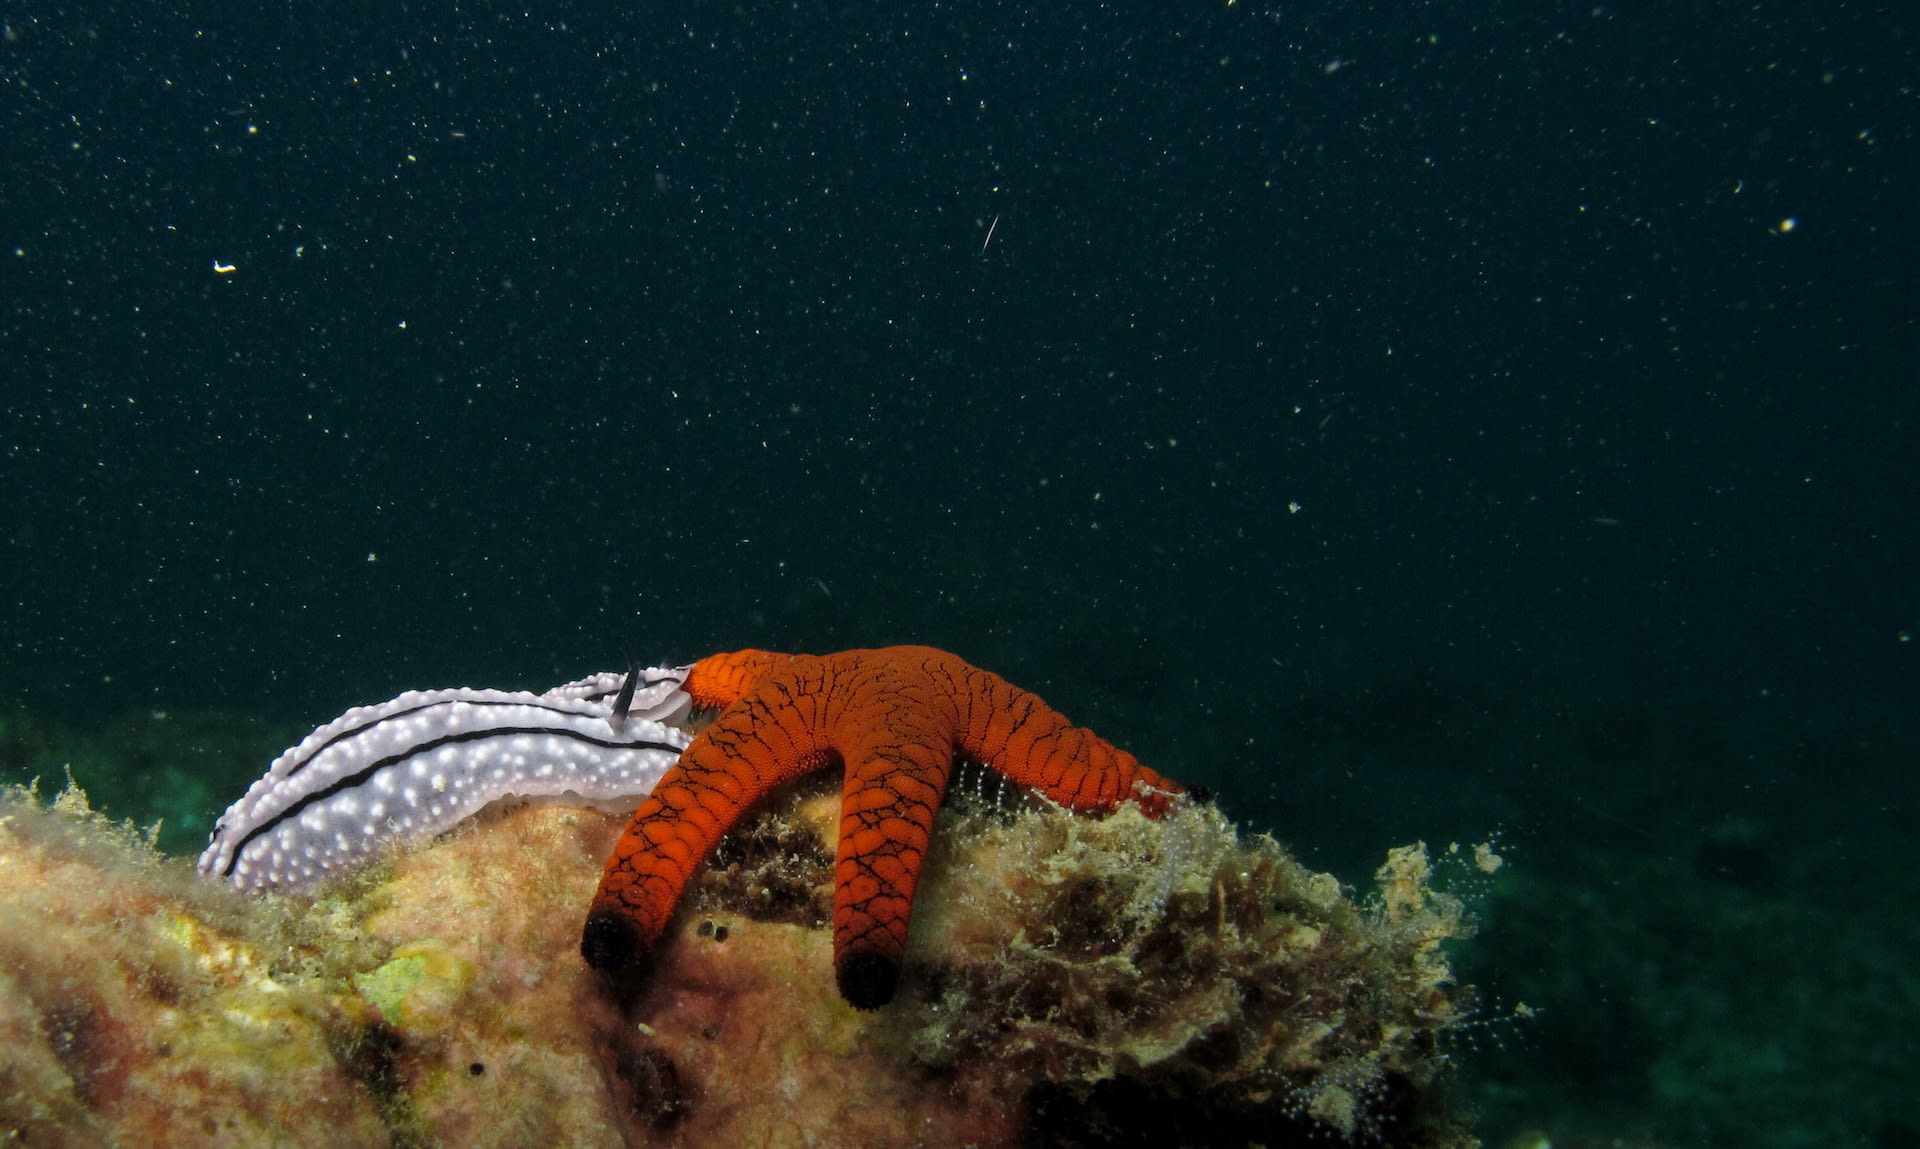 Marine life often appears more beautiful, colourful and mysterious during a night dive. In the Andamans, an Indian sea star interacts with a pair of sea slugs on a reef,